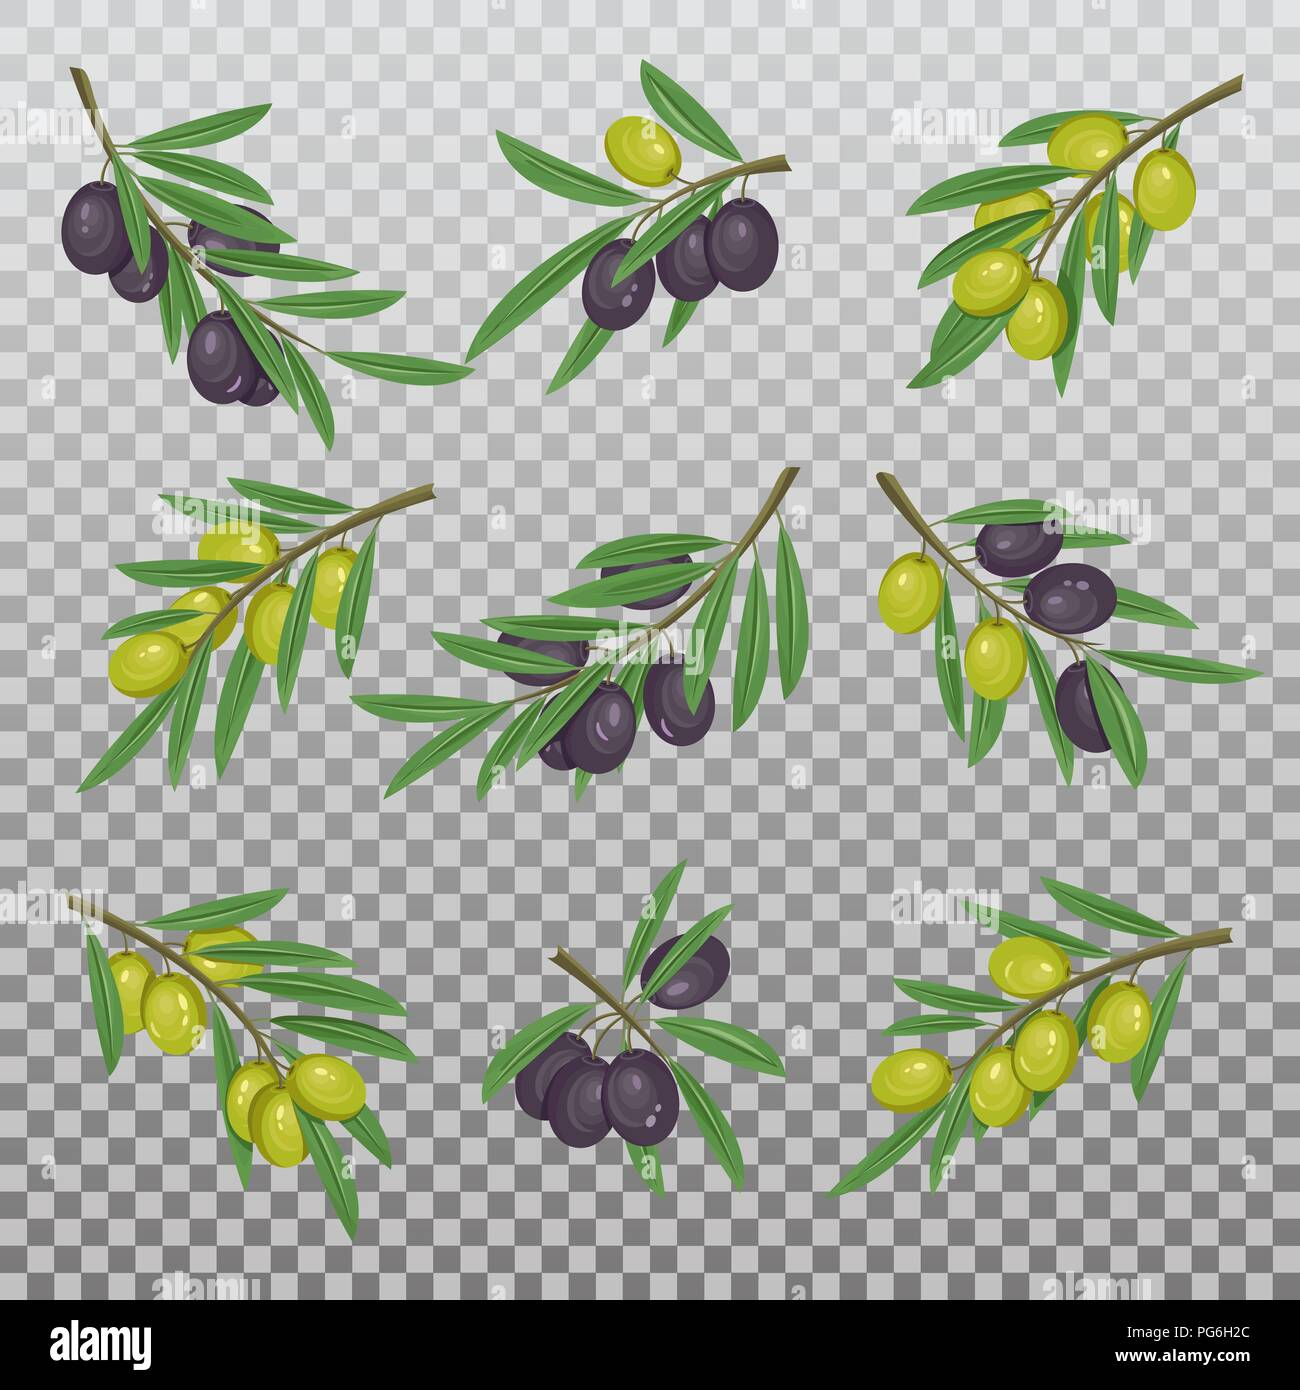 Set of isolated dark and light olive branches with berries and leaves for vegan or vegetarian nutrition, paint or food oil. Mediterranean healthy black and yellow berry foliage. Nature theme - Stock Vector